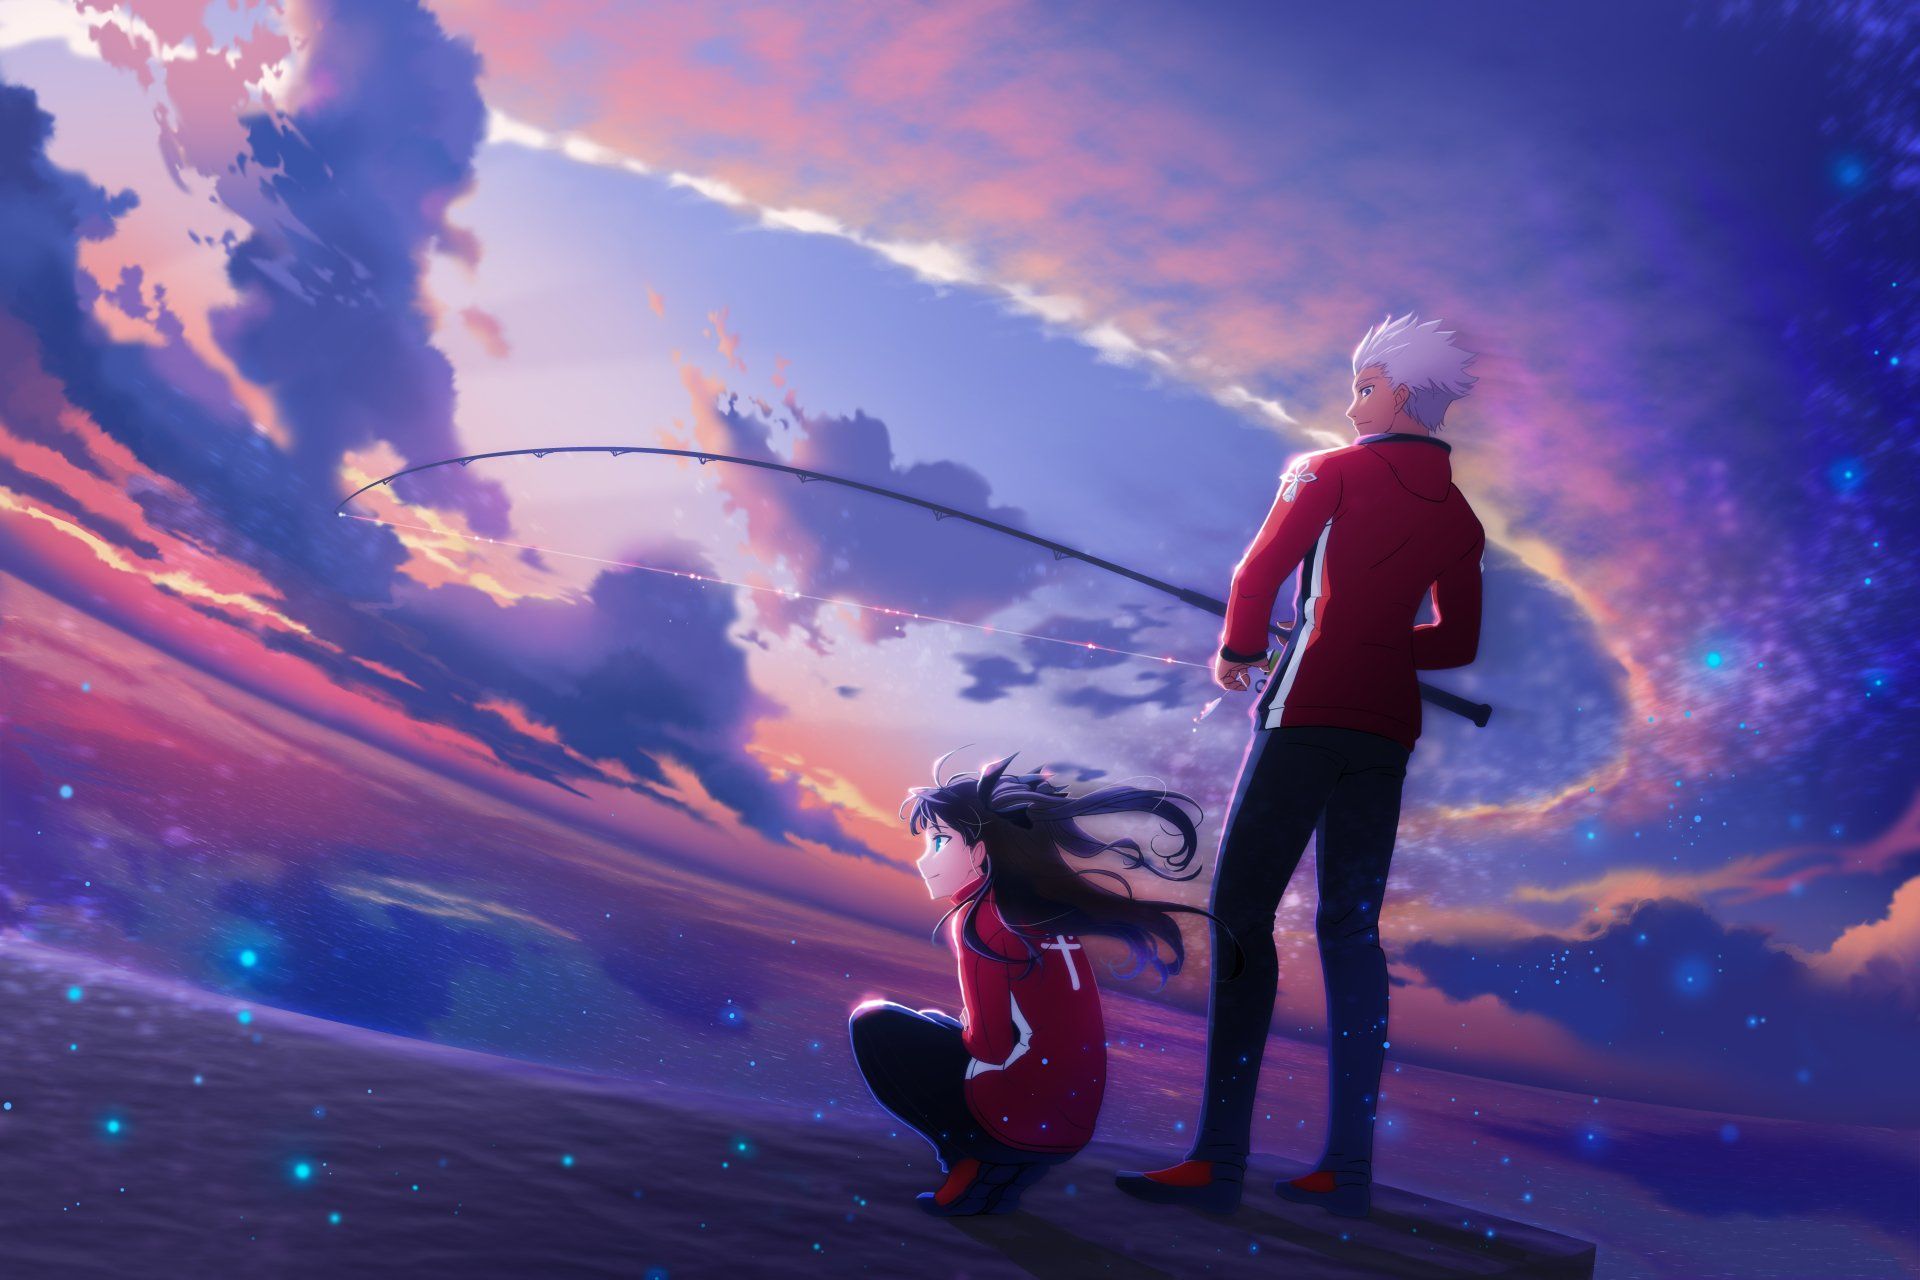 6000x4000 Fate Series Archer Wallpaper Background Image View Download Comment And Rate Wal Fate Stay Night Rin Fate Stay Night Fate Stay Night Characters